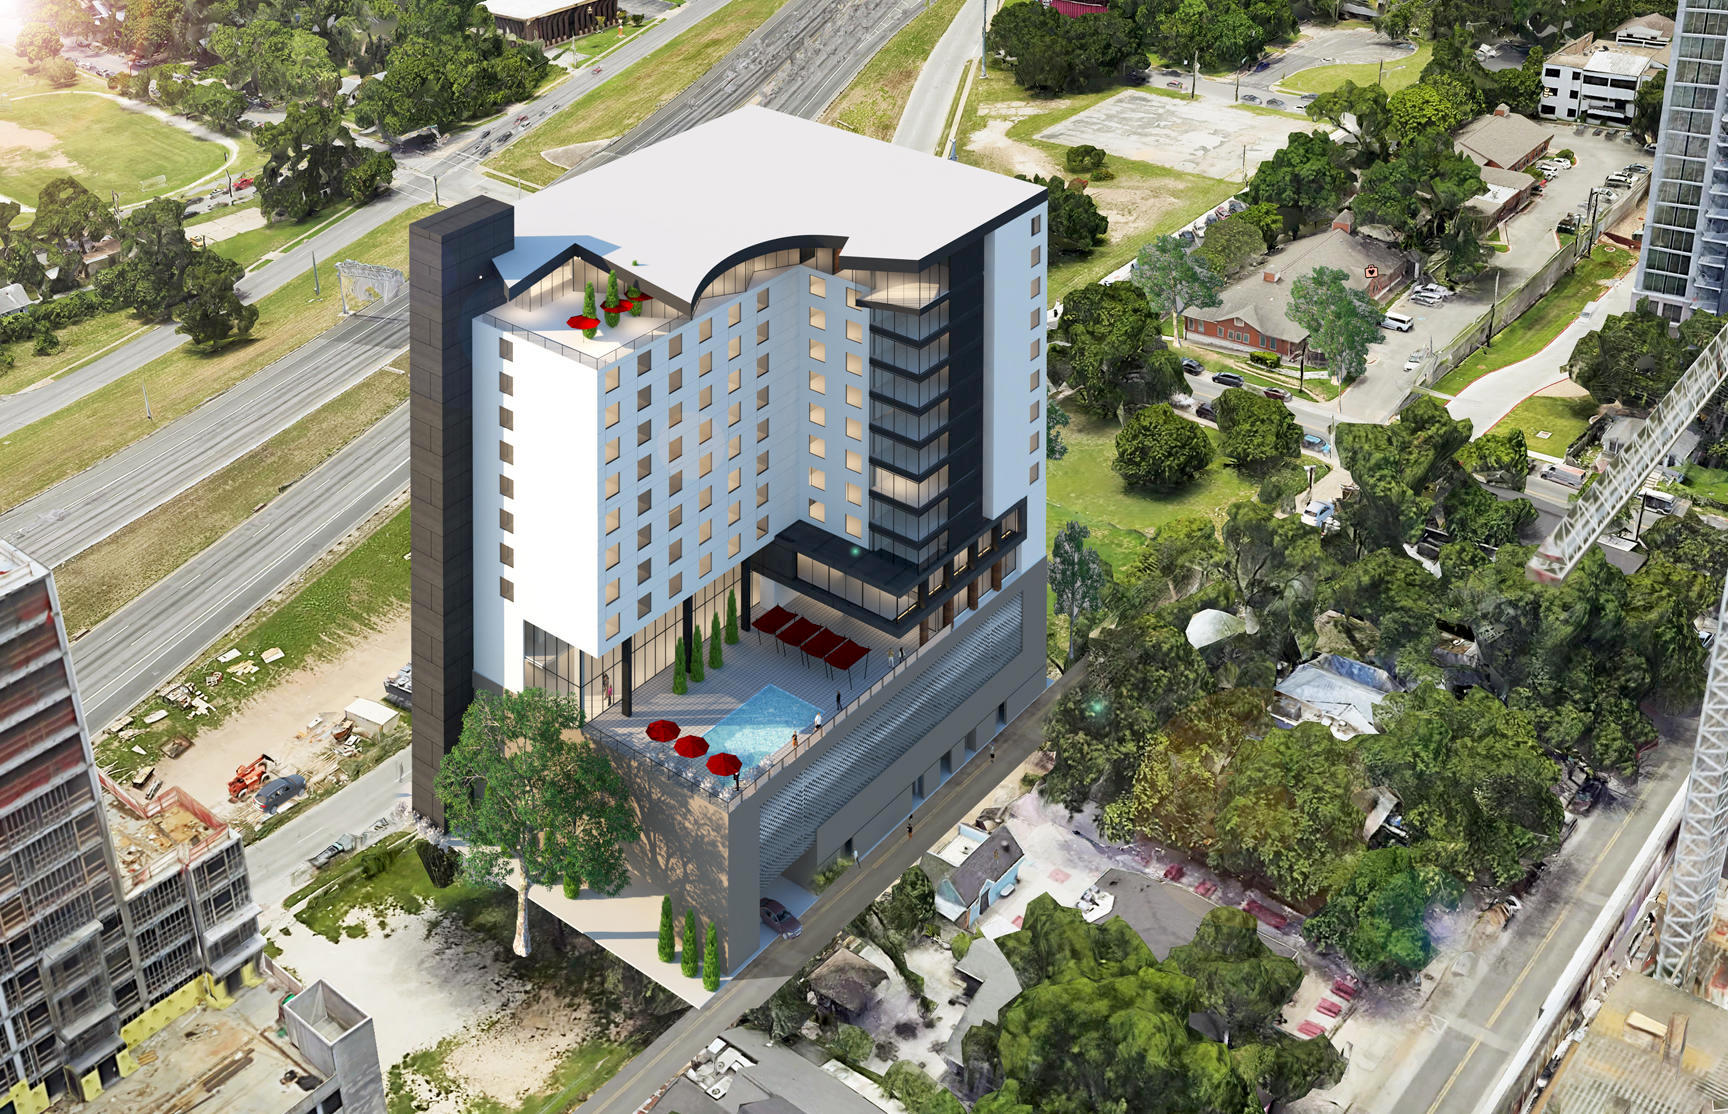 Garage Racks Austin Two New Hotels Headed For East Avenue In The Rainey Street